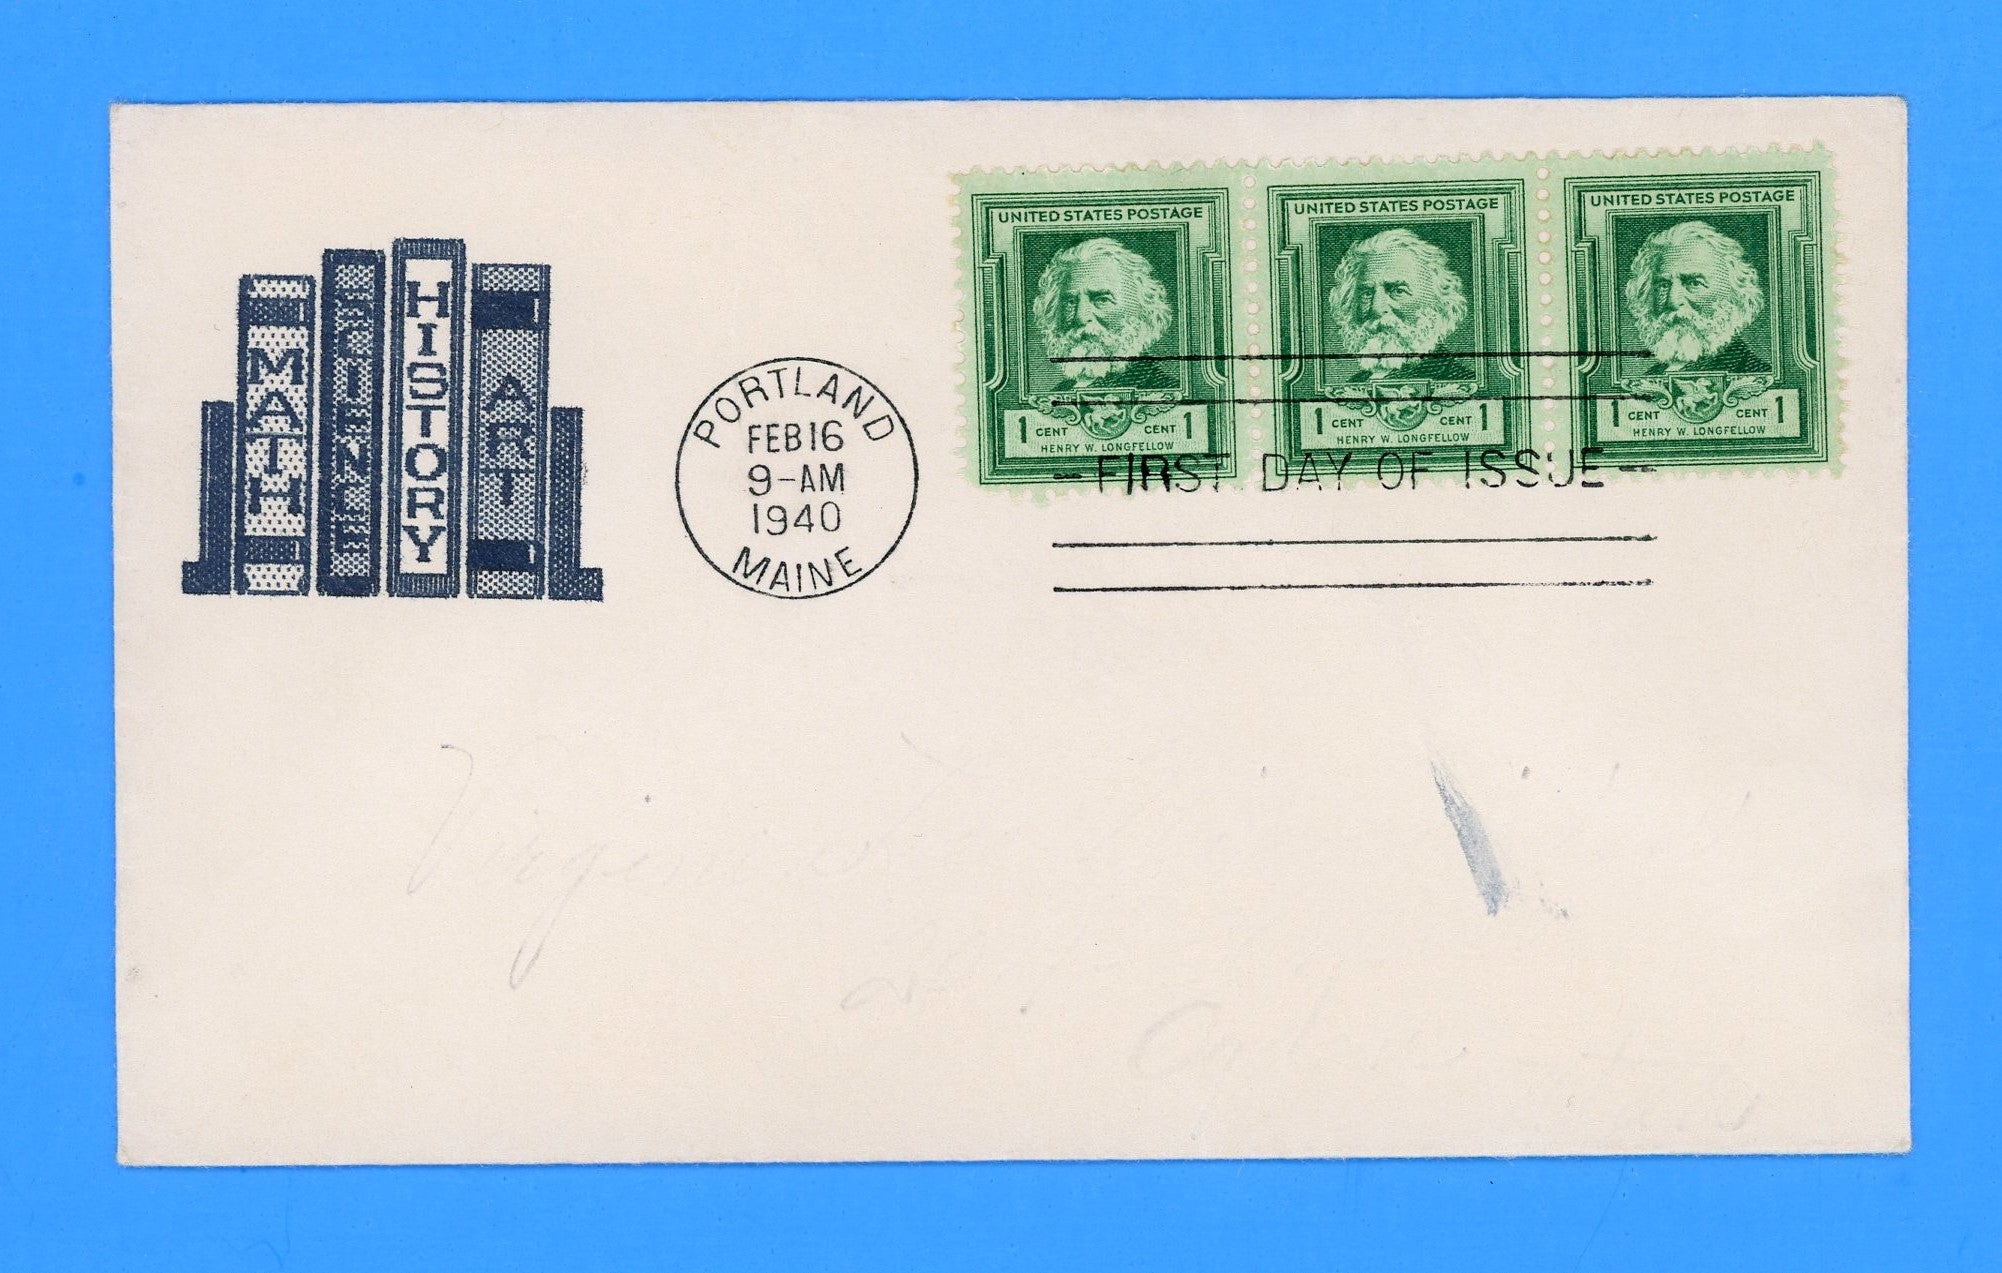 Scott #864 Henry Longfellow, Famous Americans First Day Cover